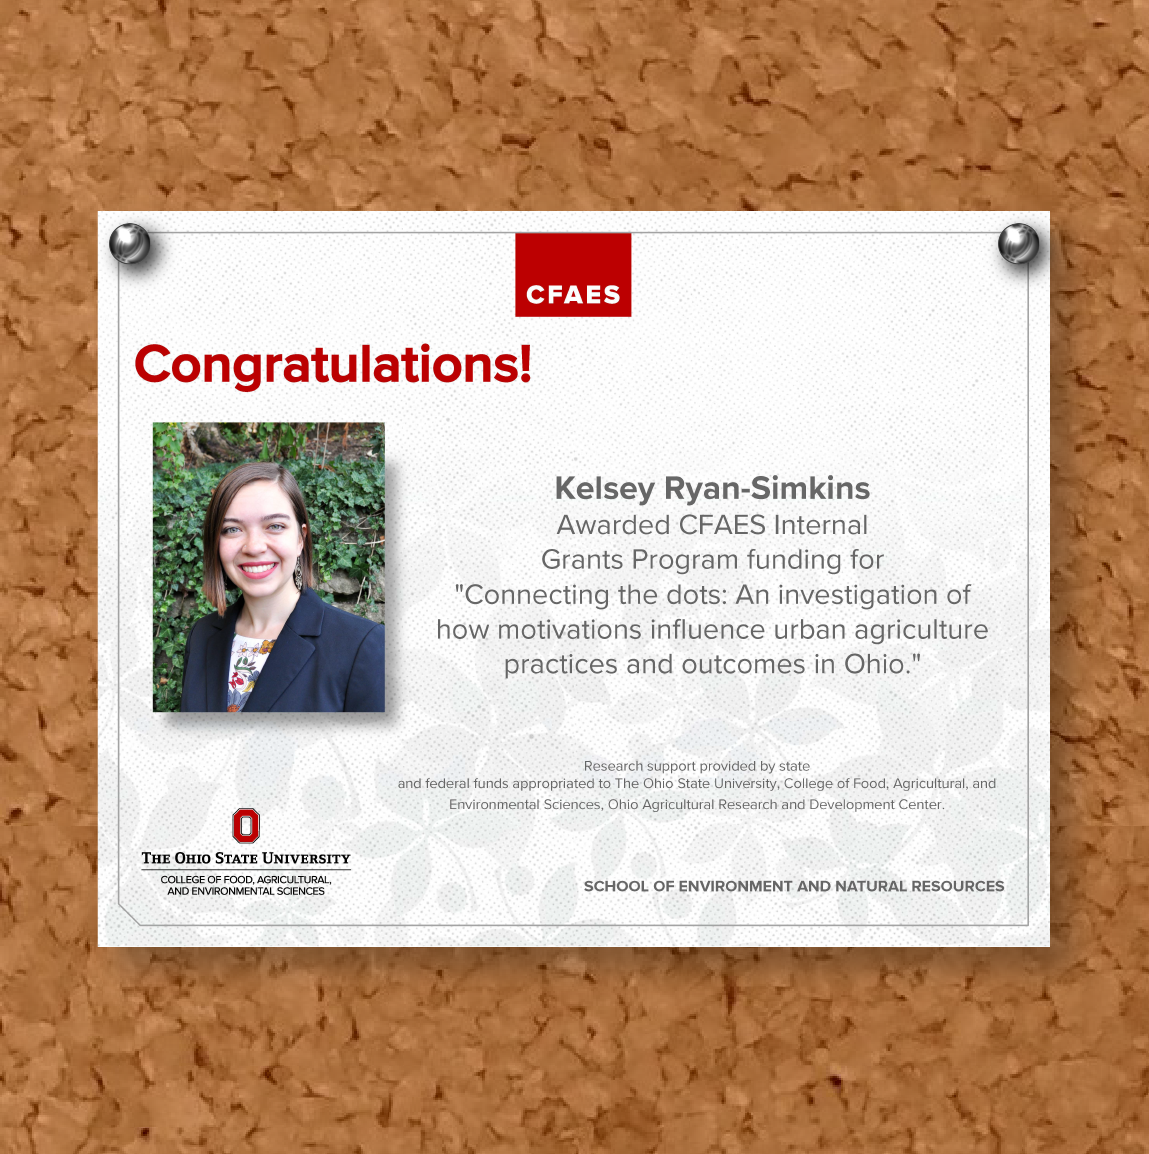 Image shows bulletin board note of congratulations to Kelsey Ryan-Simkins for funding award.